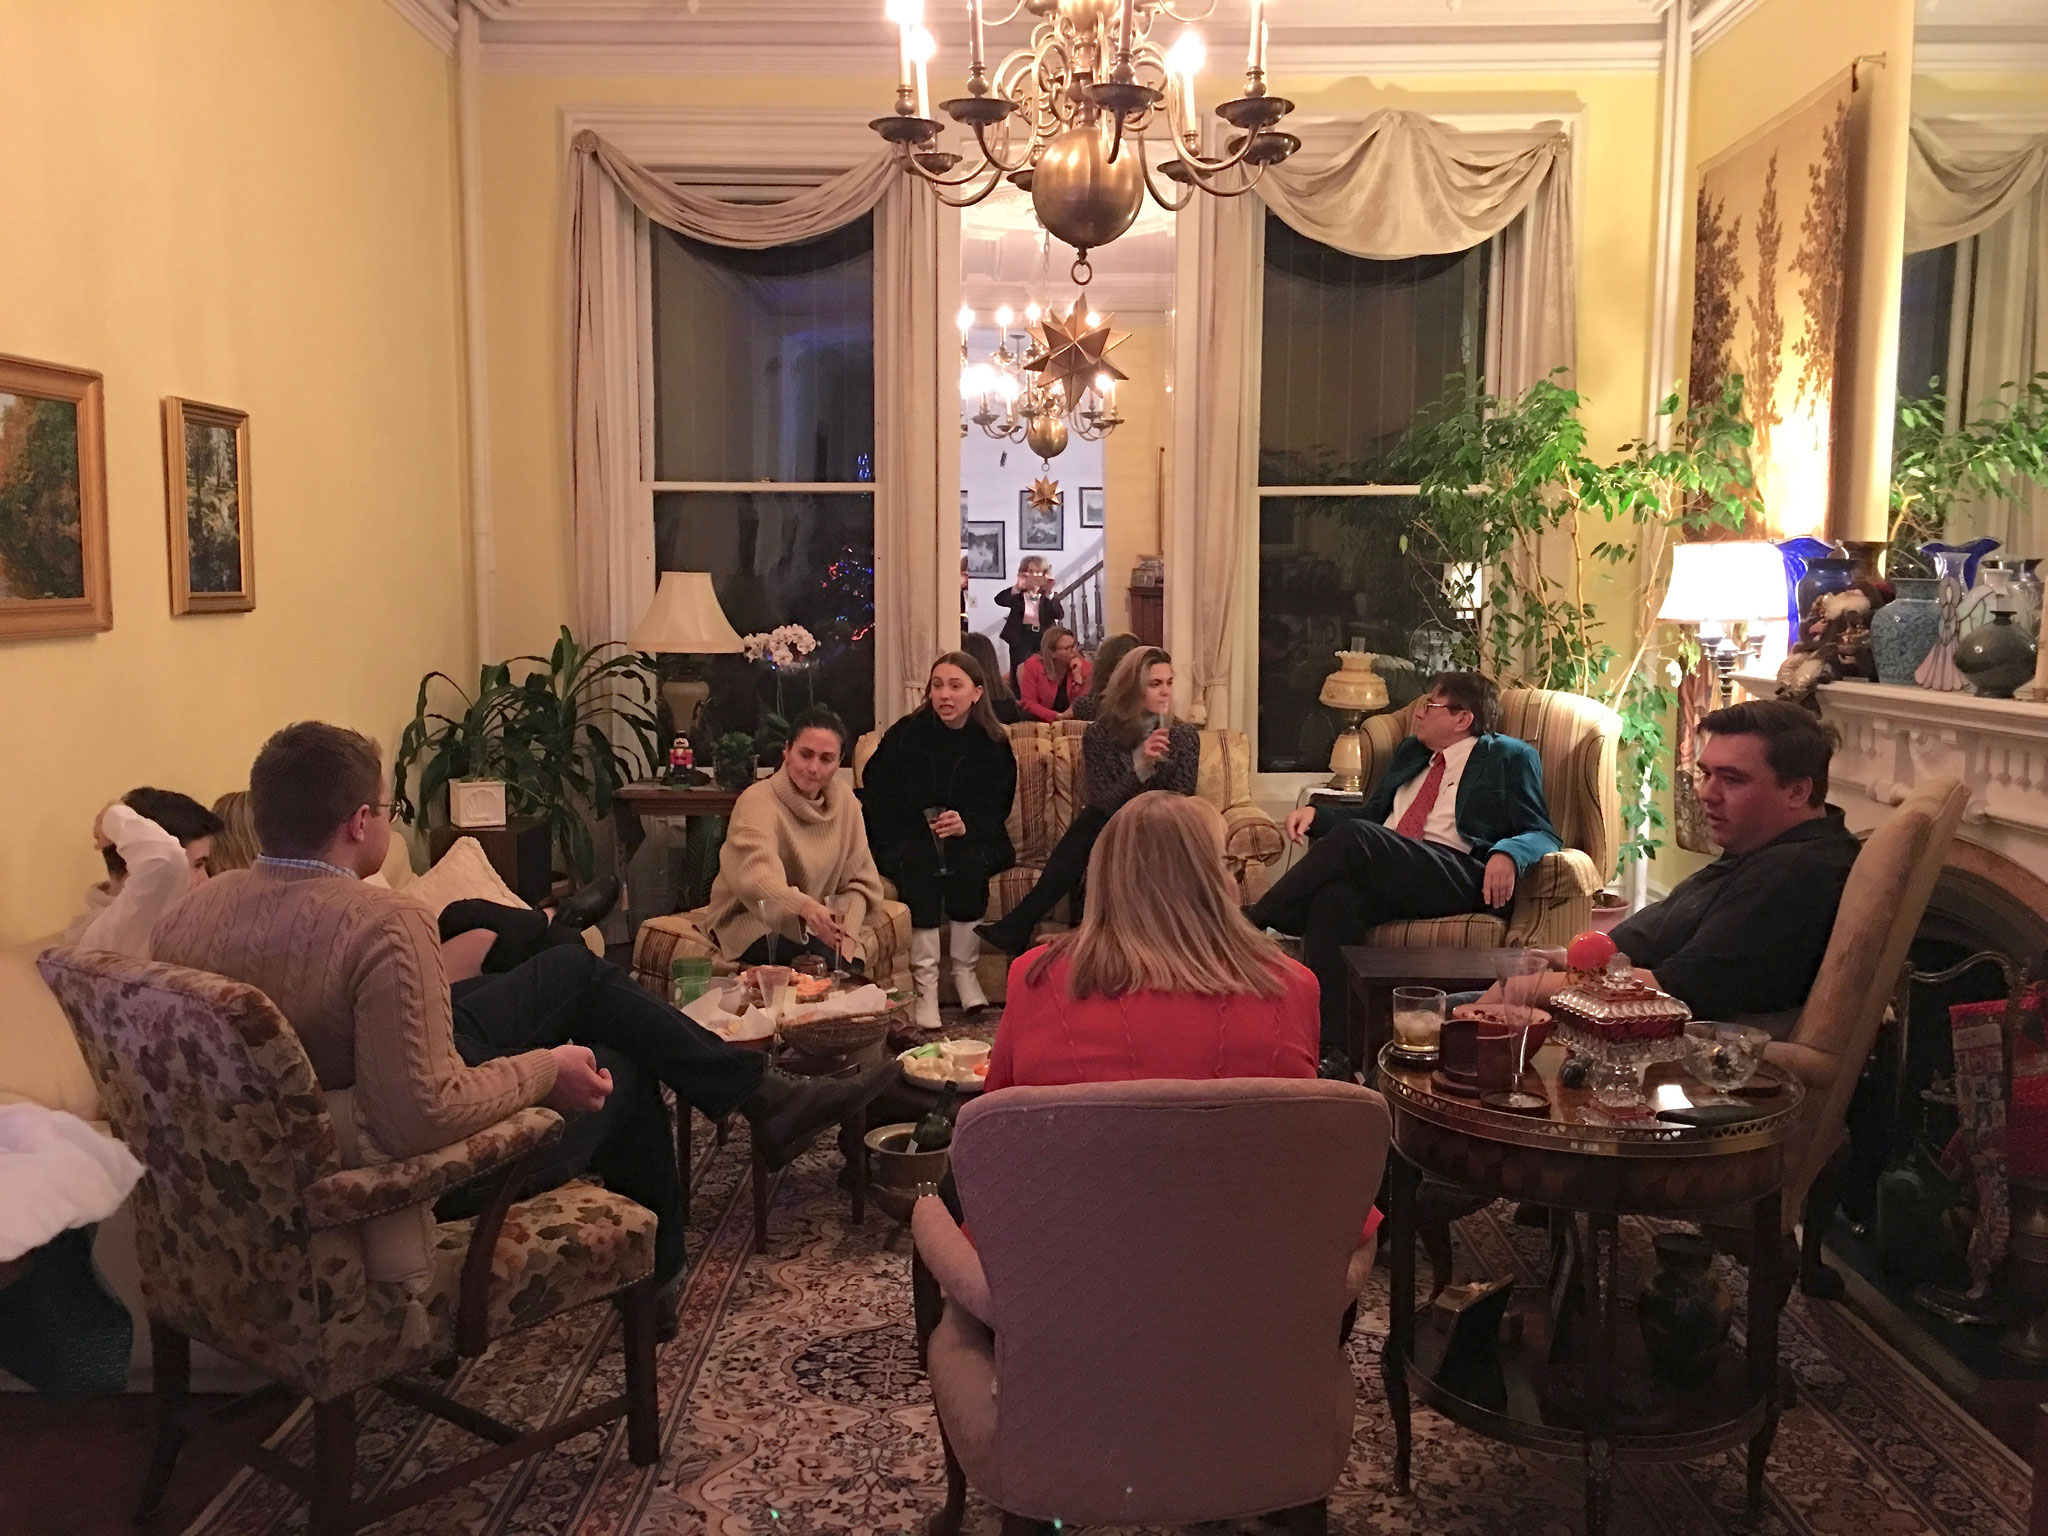 Gudas-Wagner residence, Xmas celebration, Dec. 22, 2018